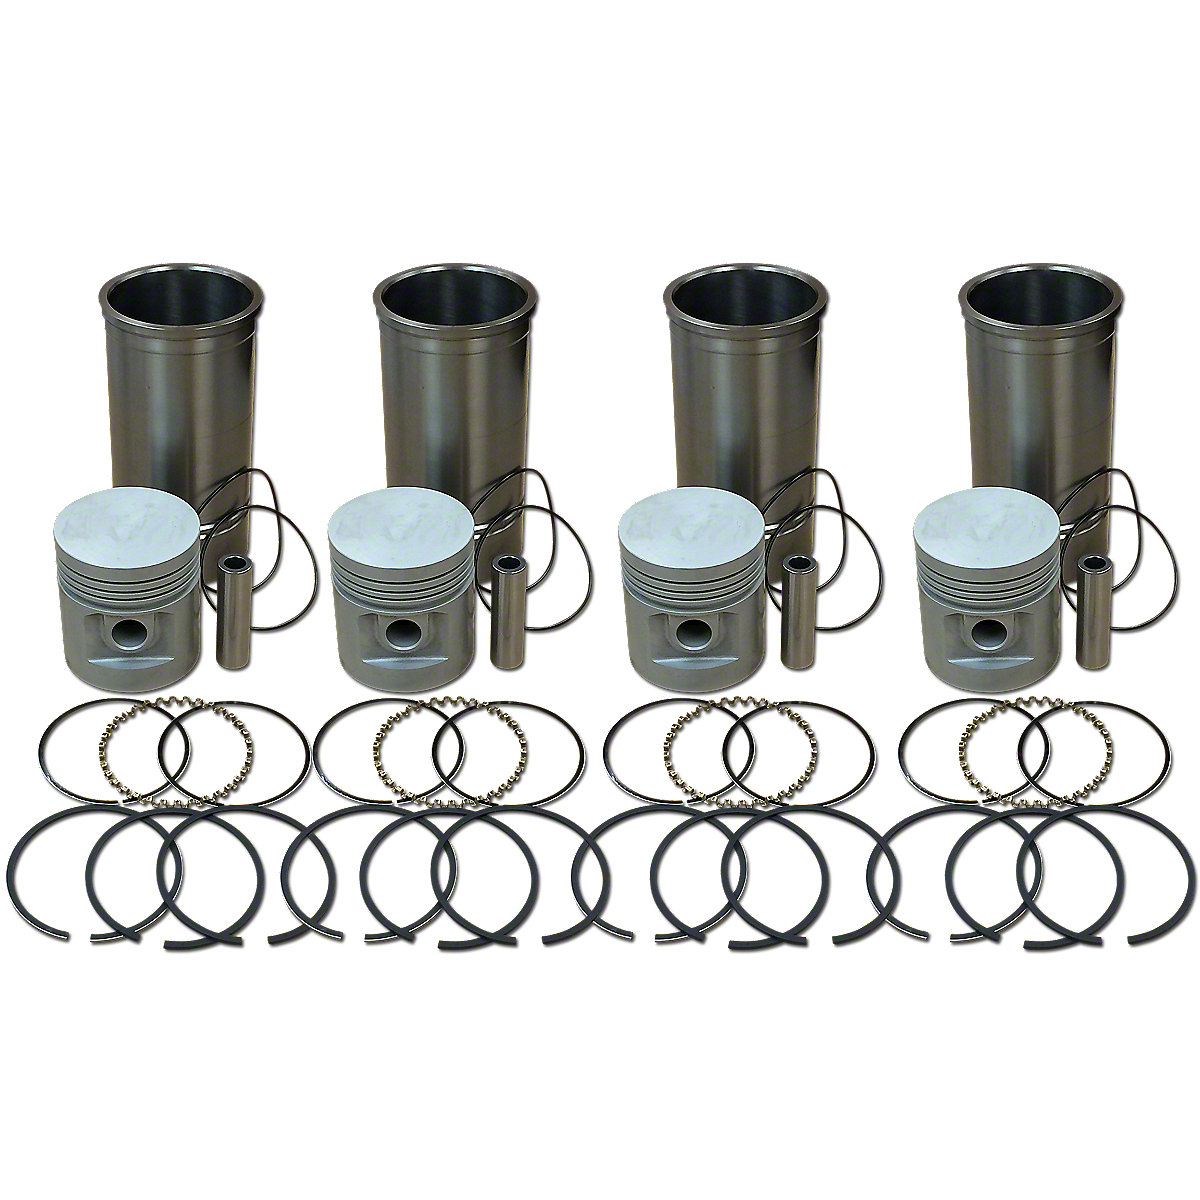 4 Cylinder Piston and Sleeve Kit For Allis Chalmers: WC, WD, WF.